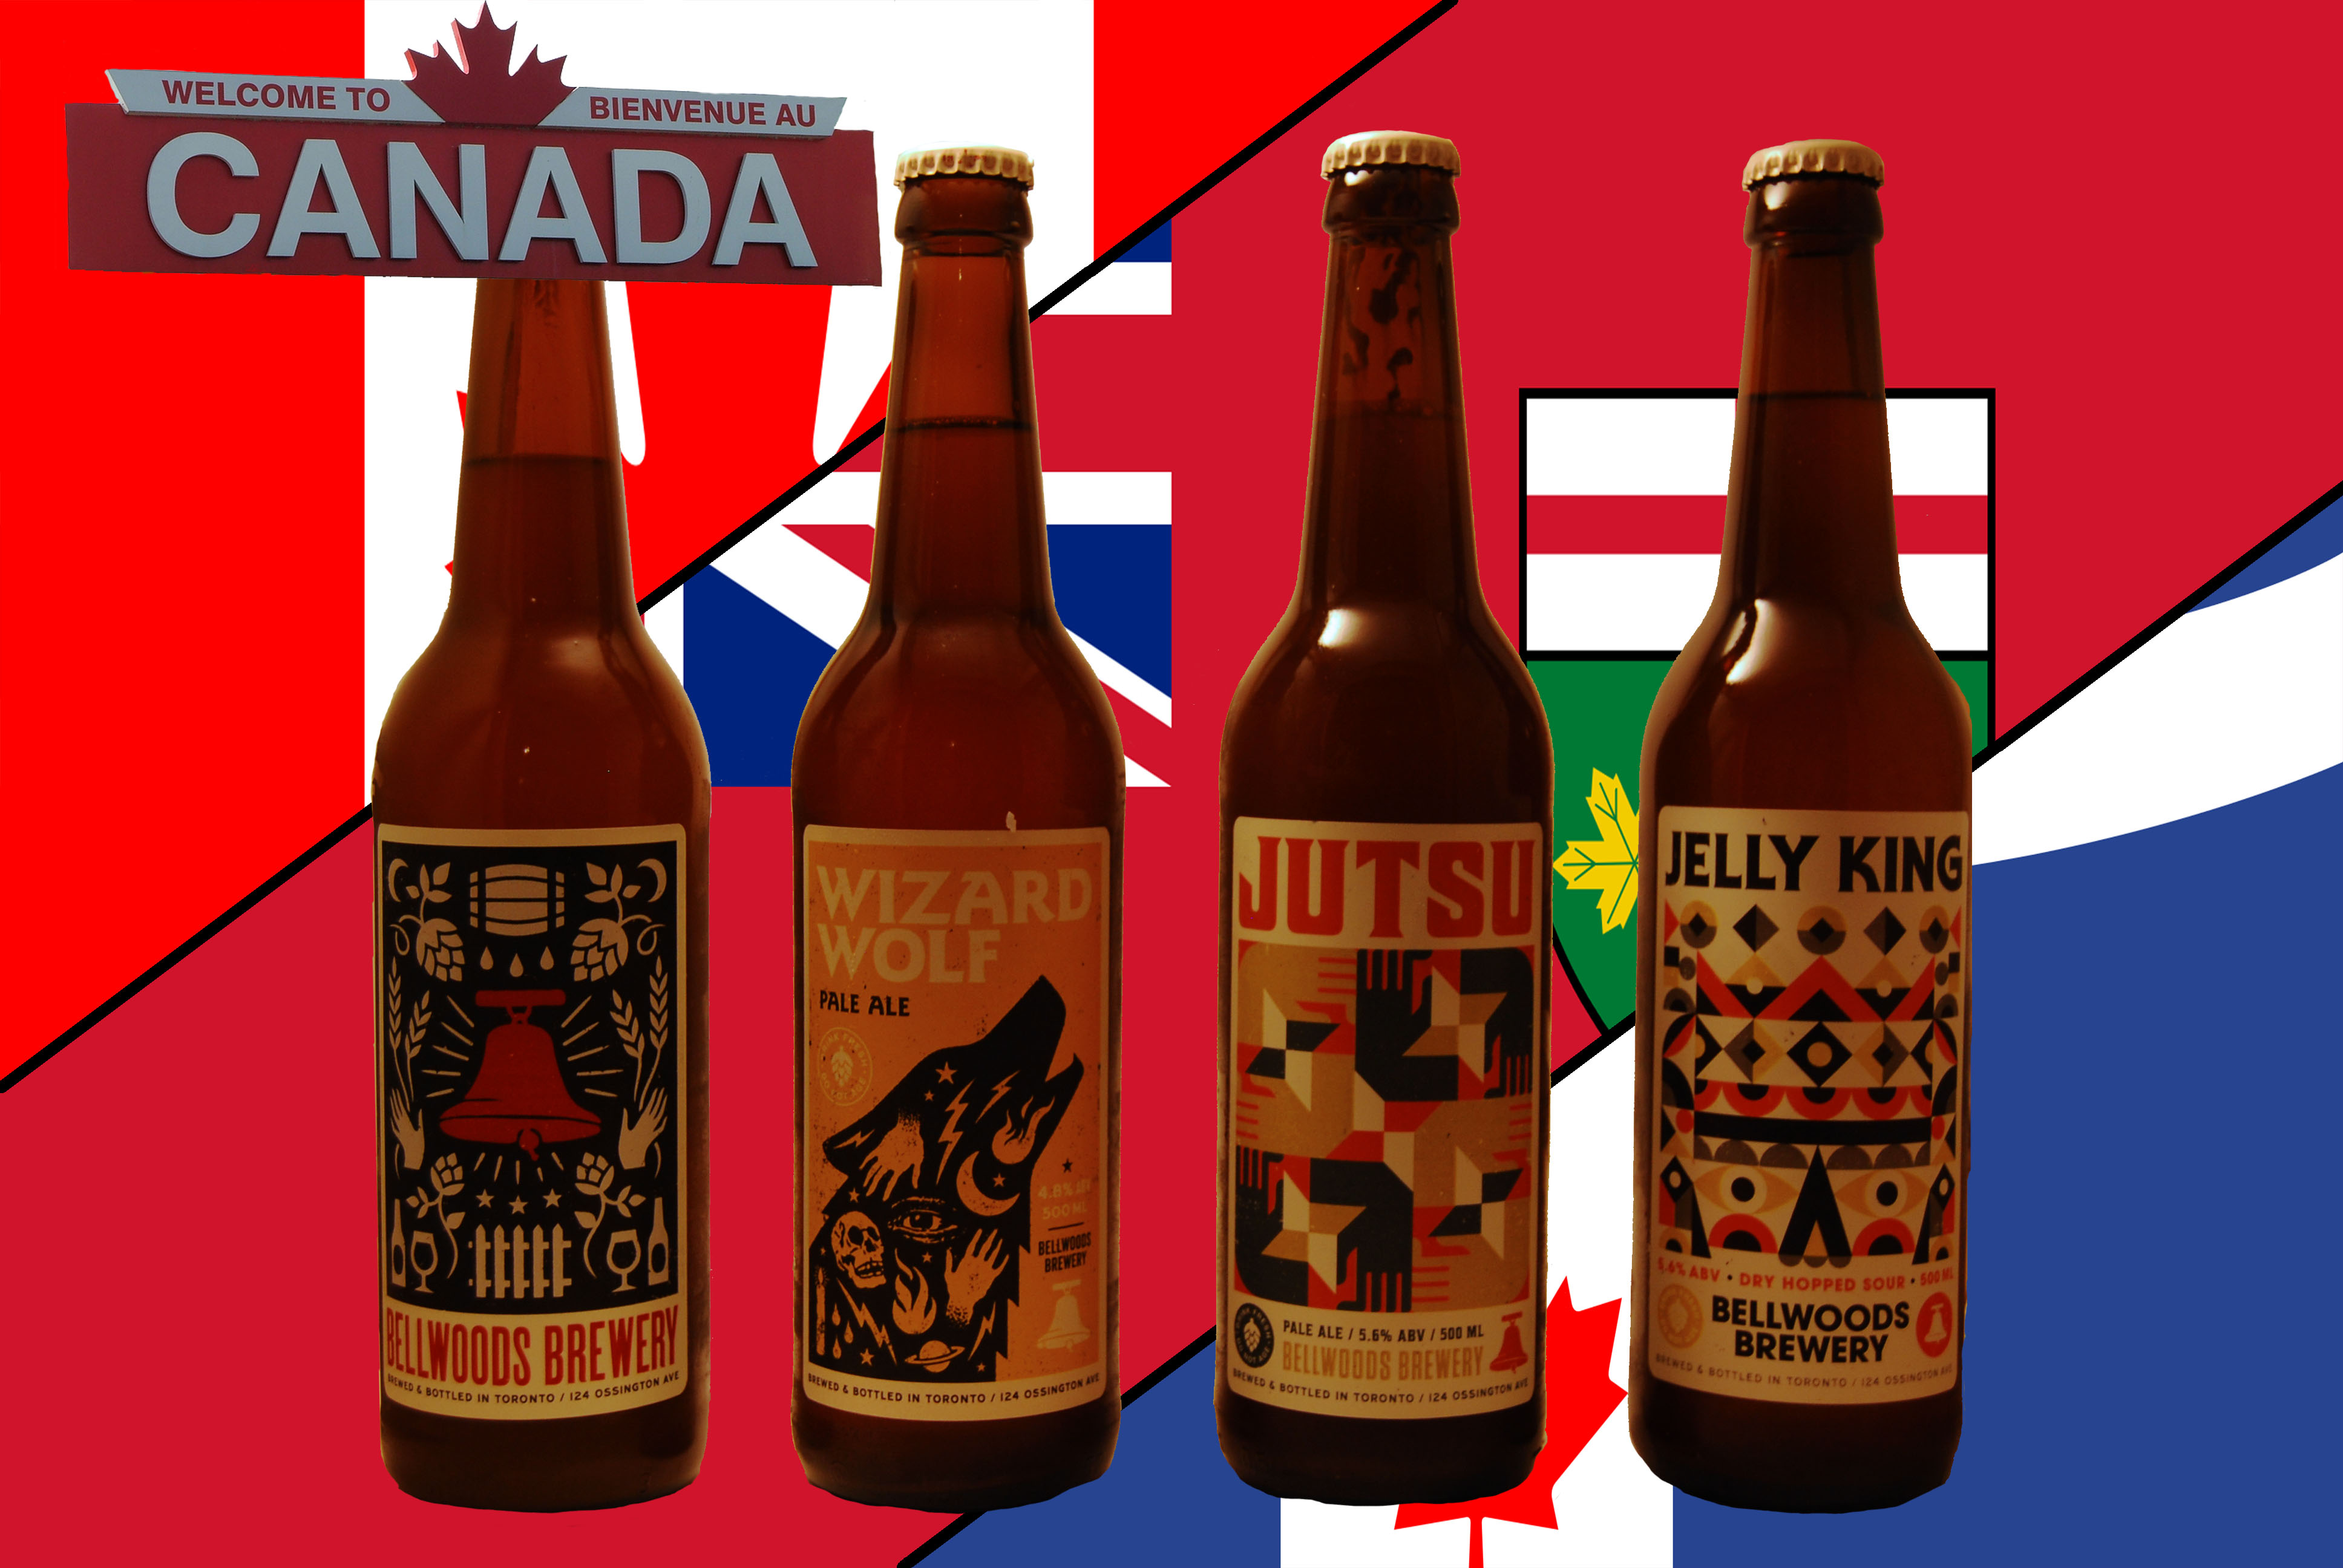 Escape to Canada: Bellwoods Brewery